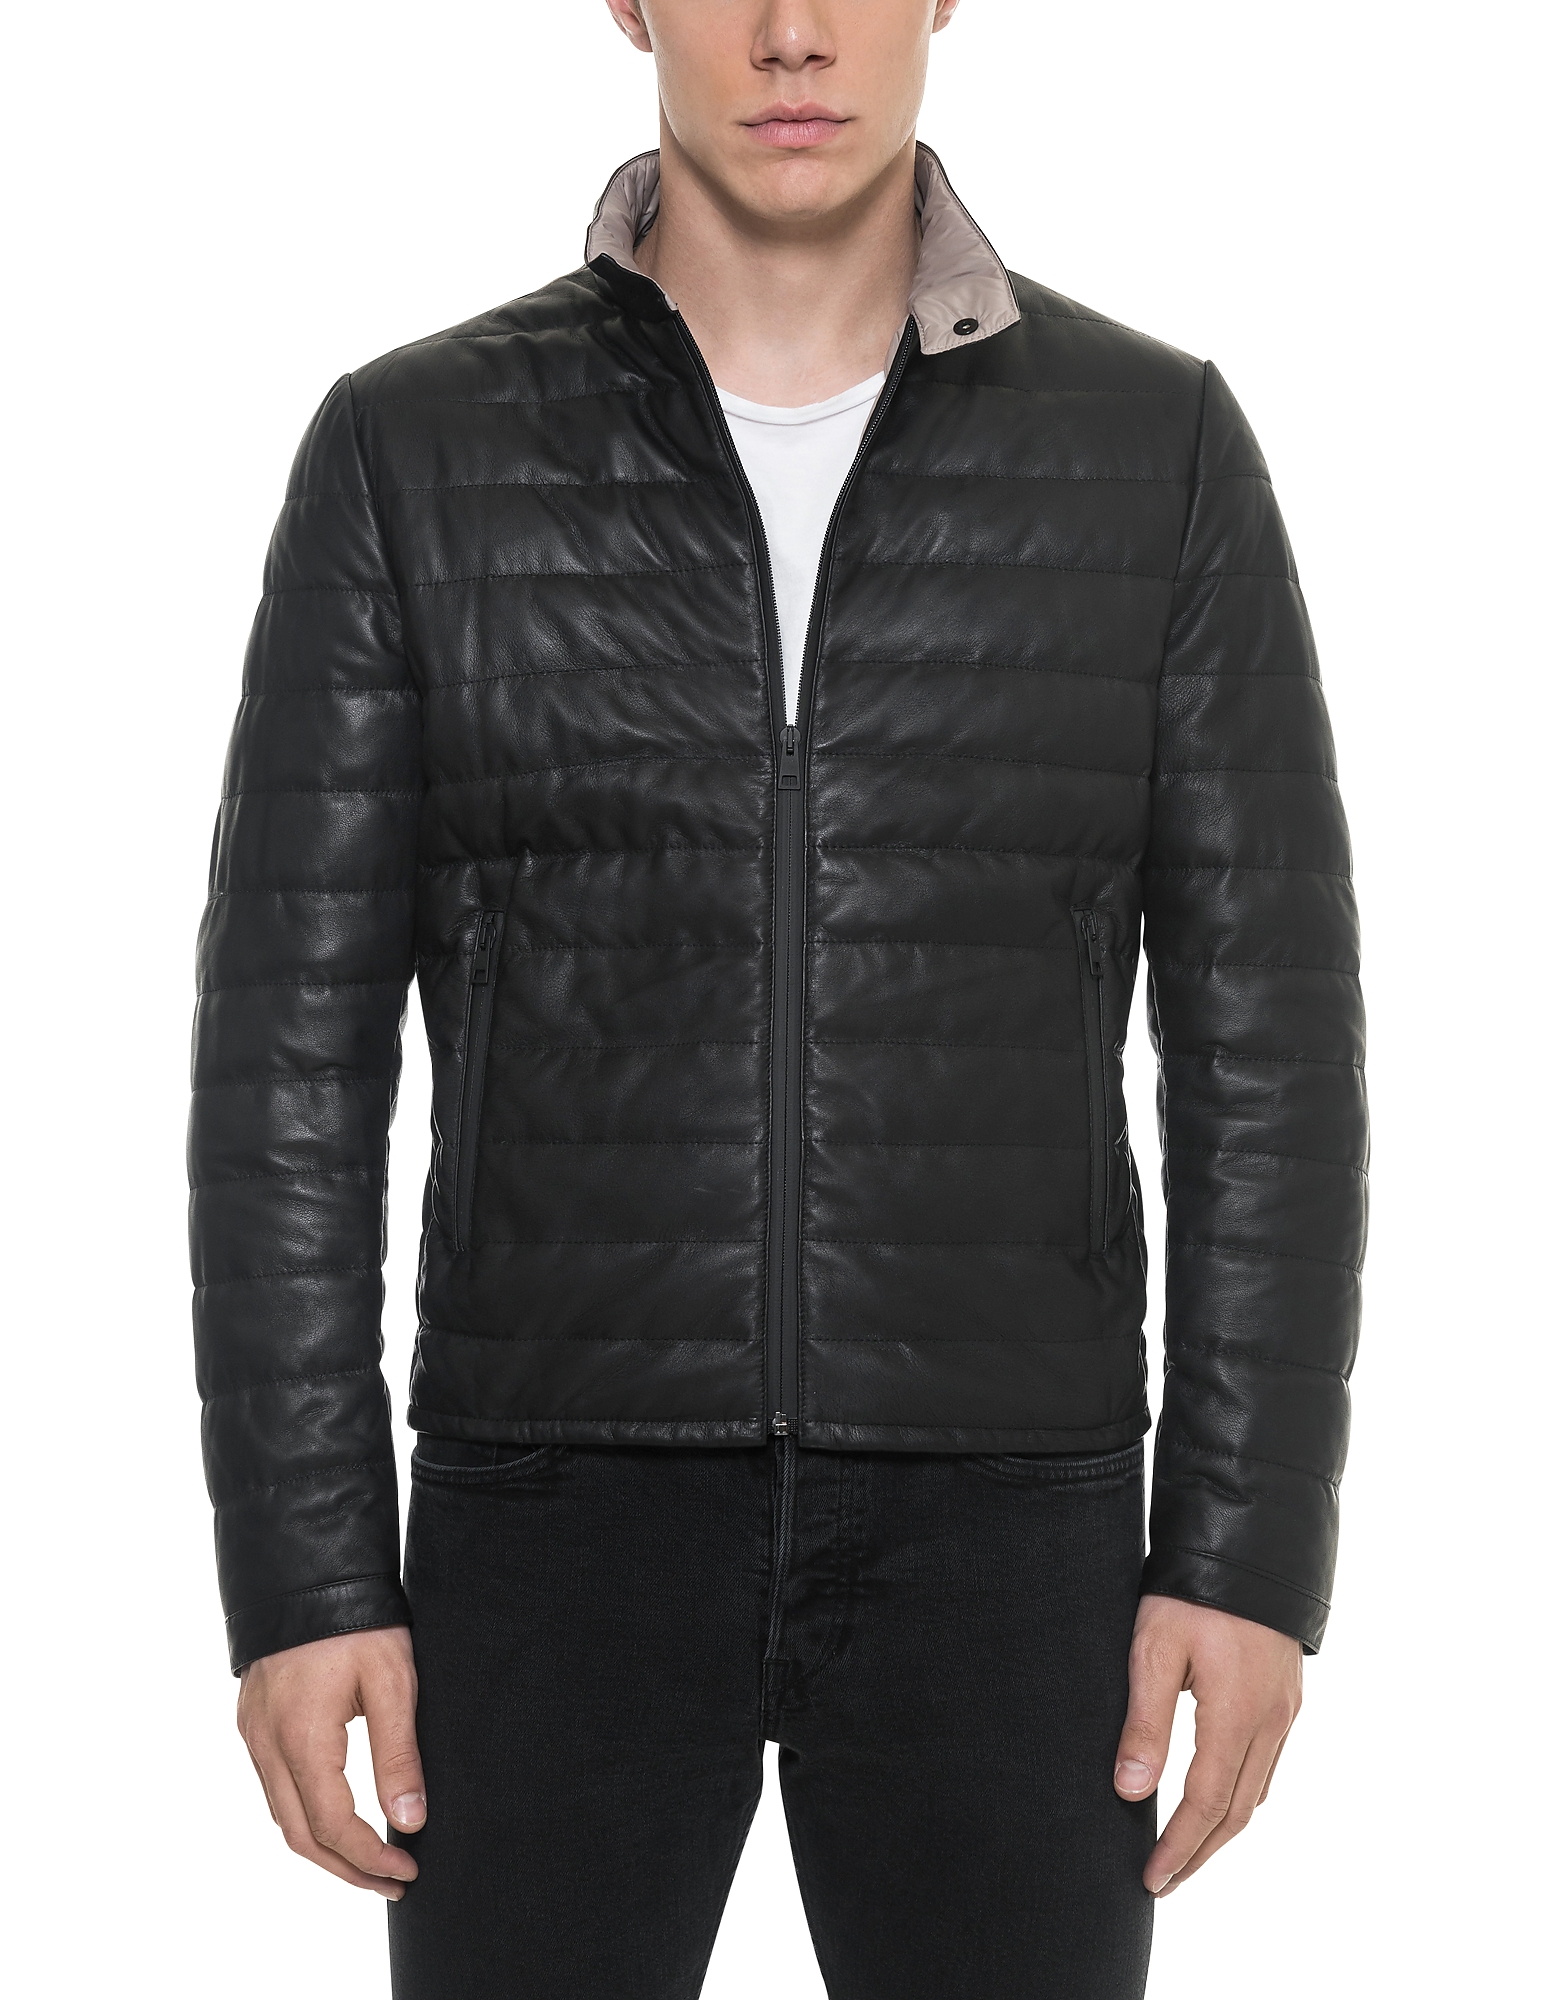 Forzieri Leather Jackets, Black Quilted Leather Men's Jacket